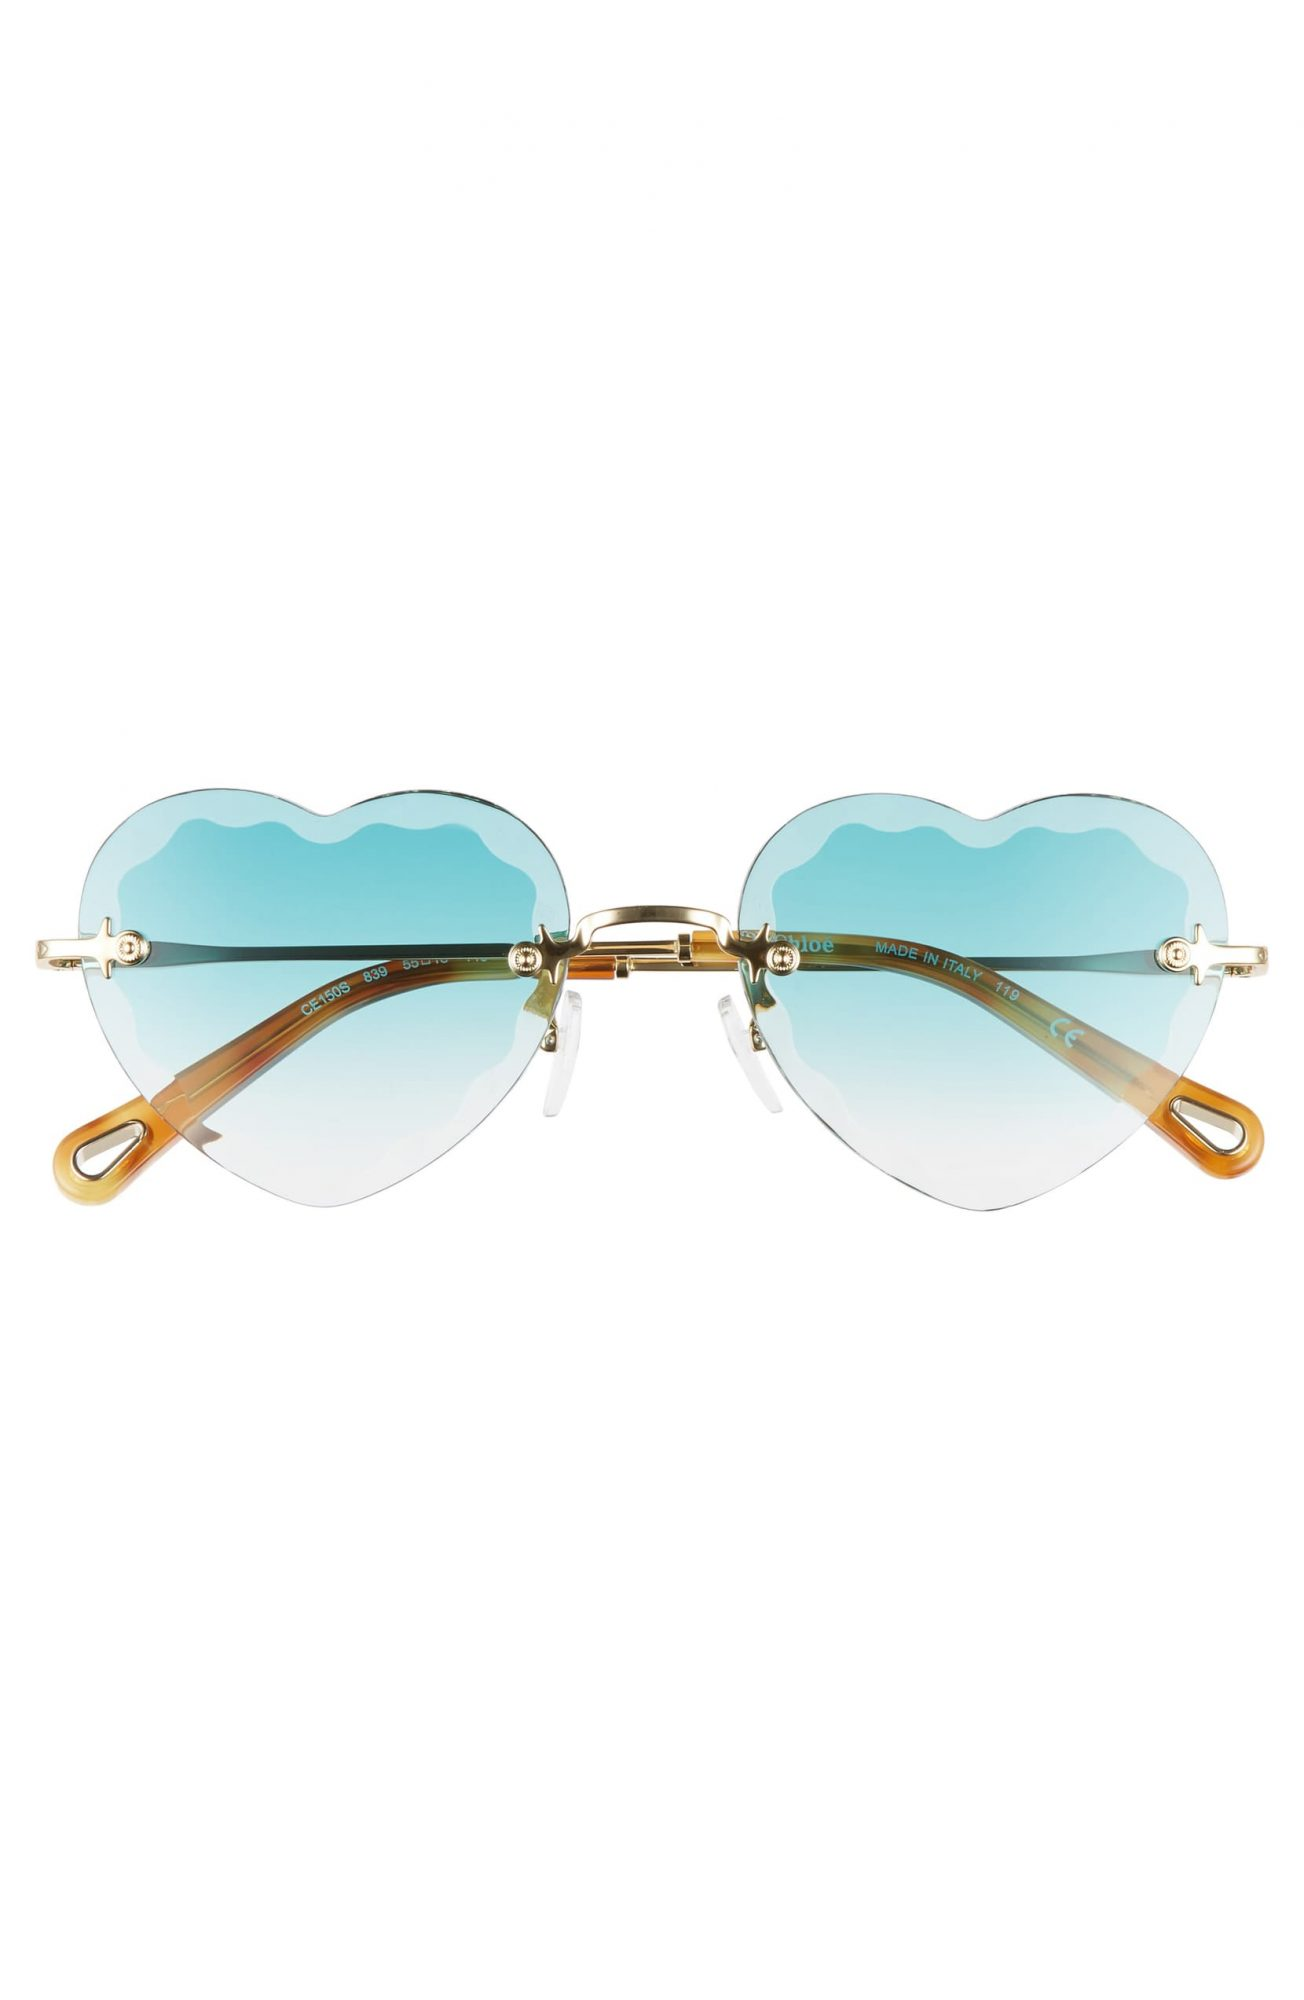 Chloe heart-shaped sunglasses